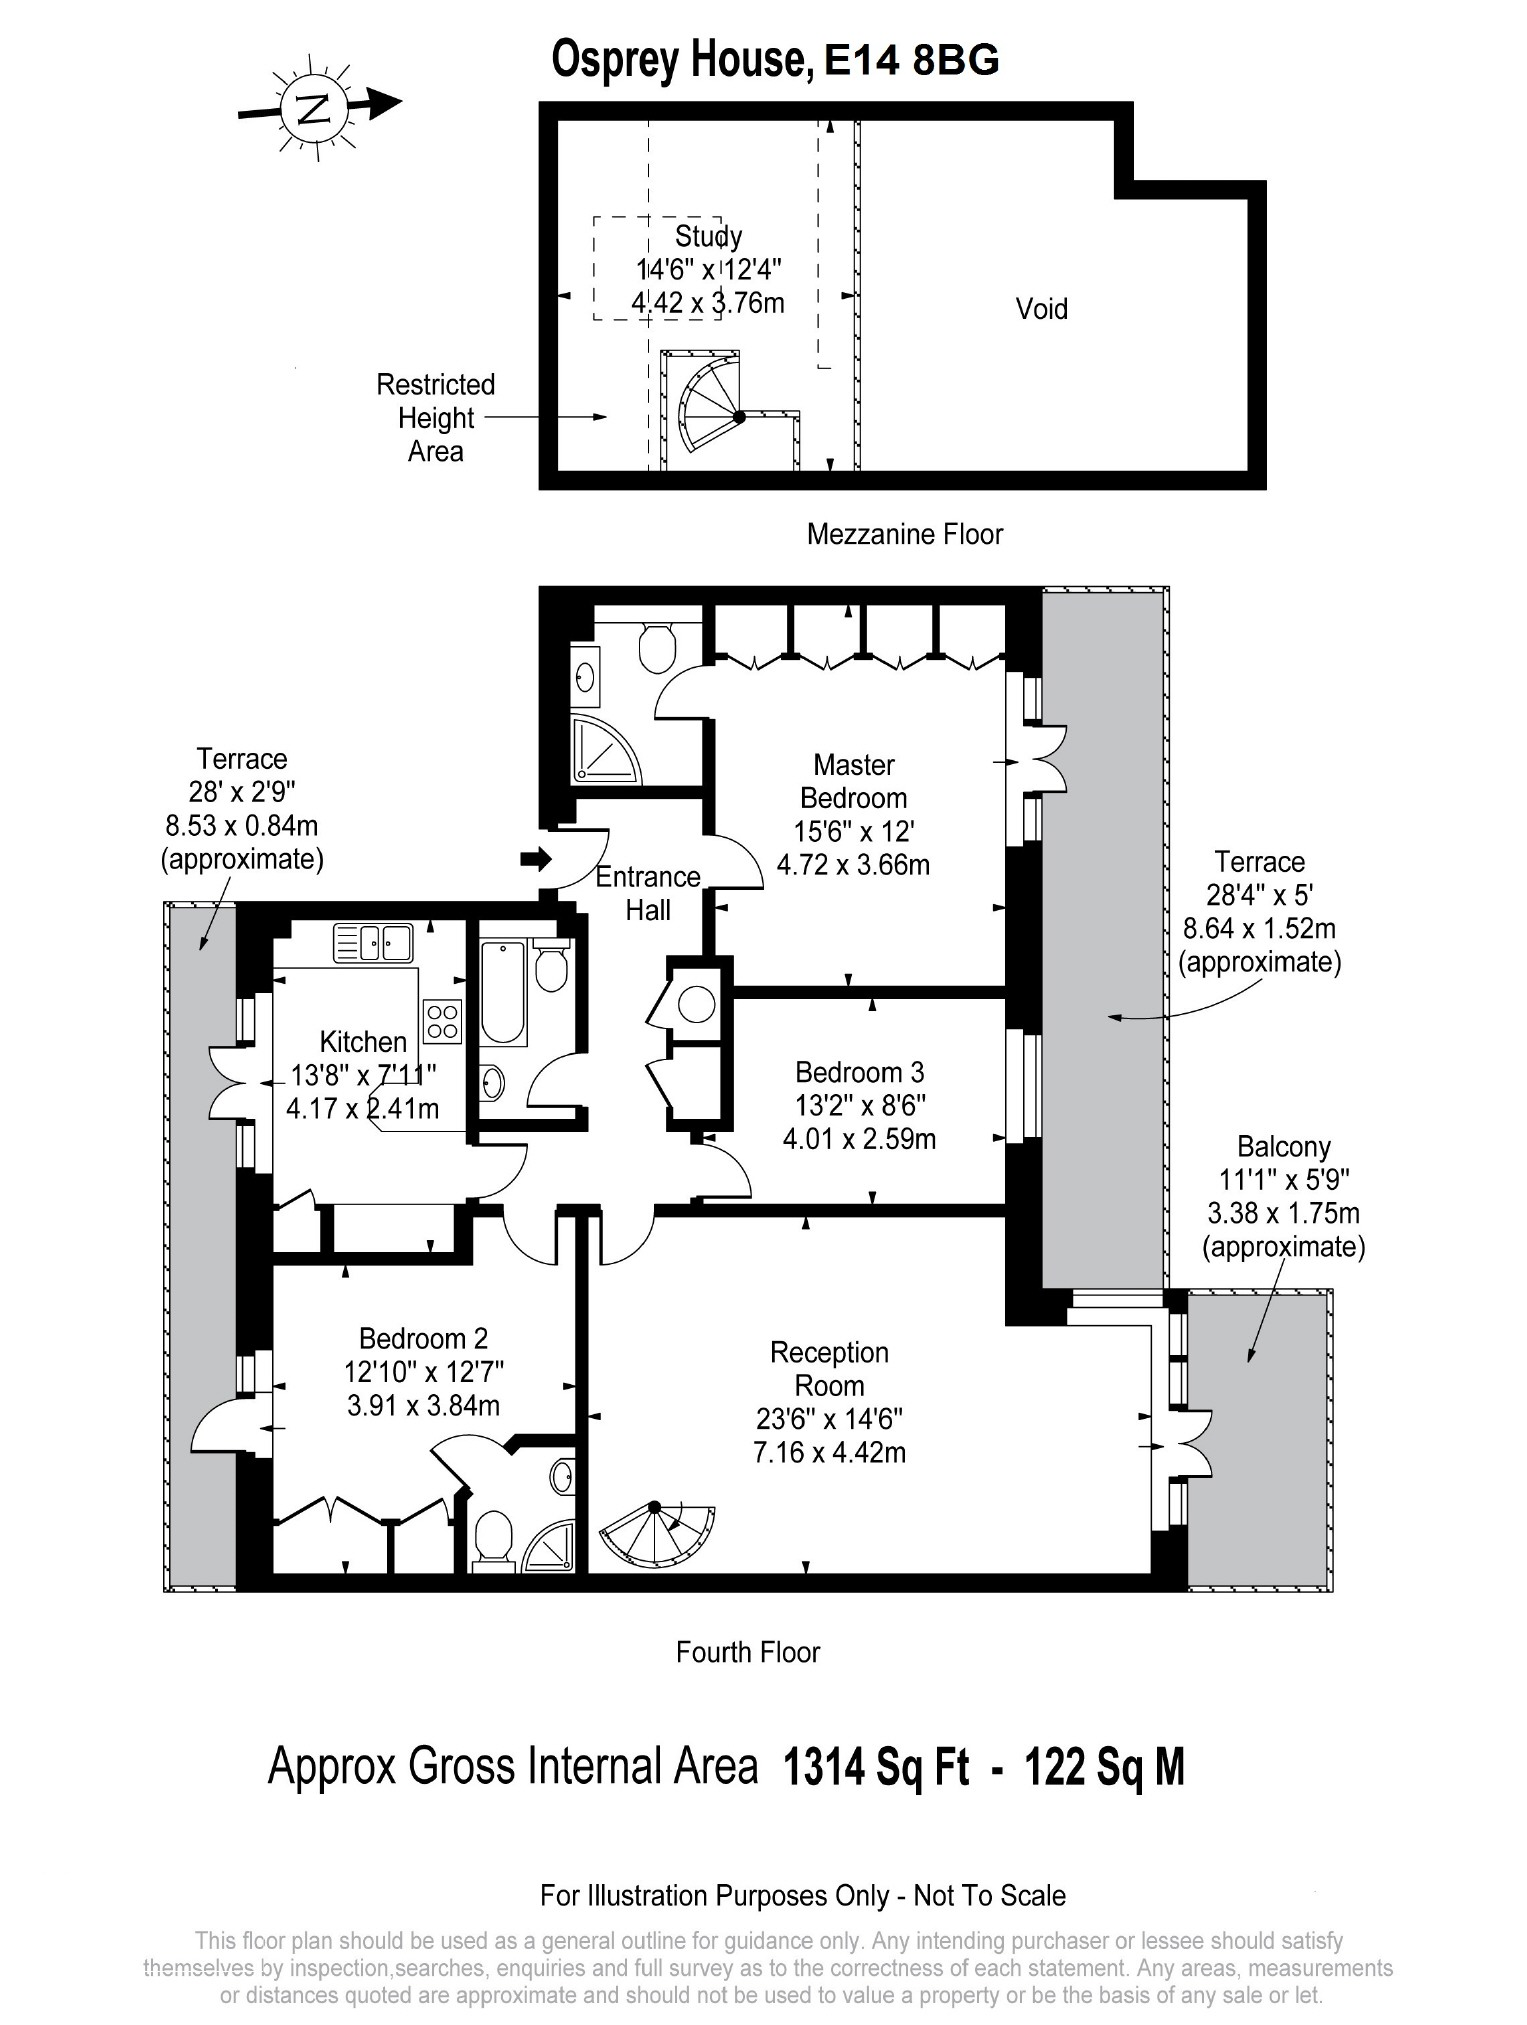 Osprey House, Victory Place, London, E14 floorplan